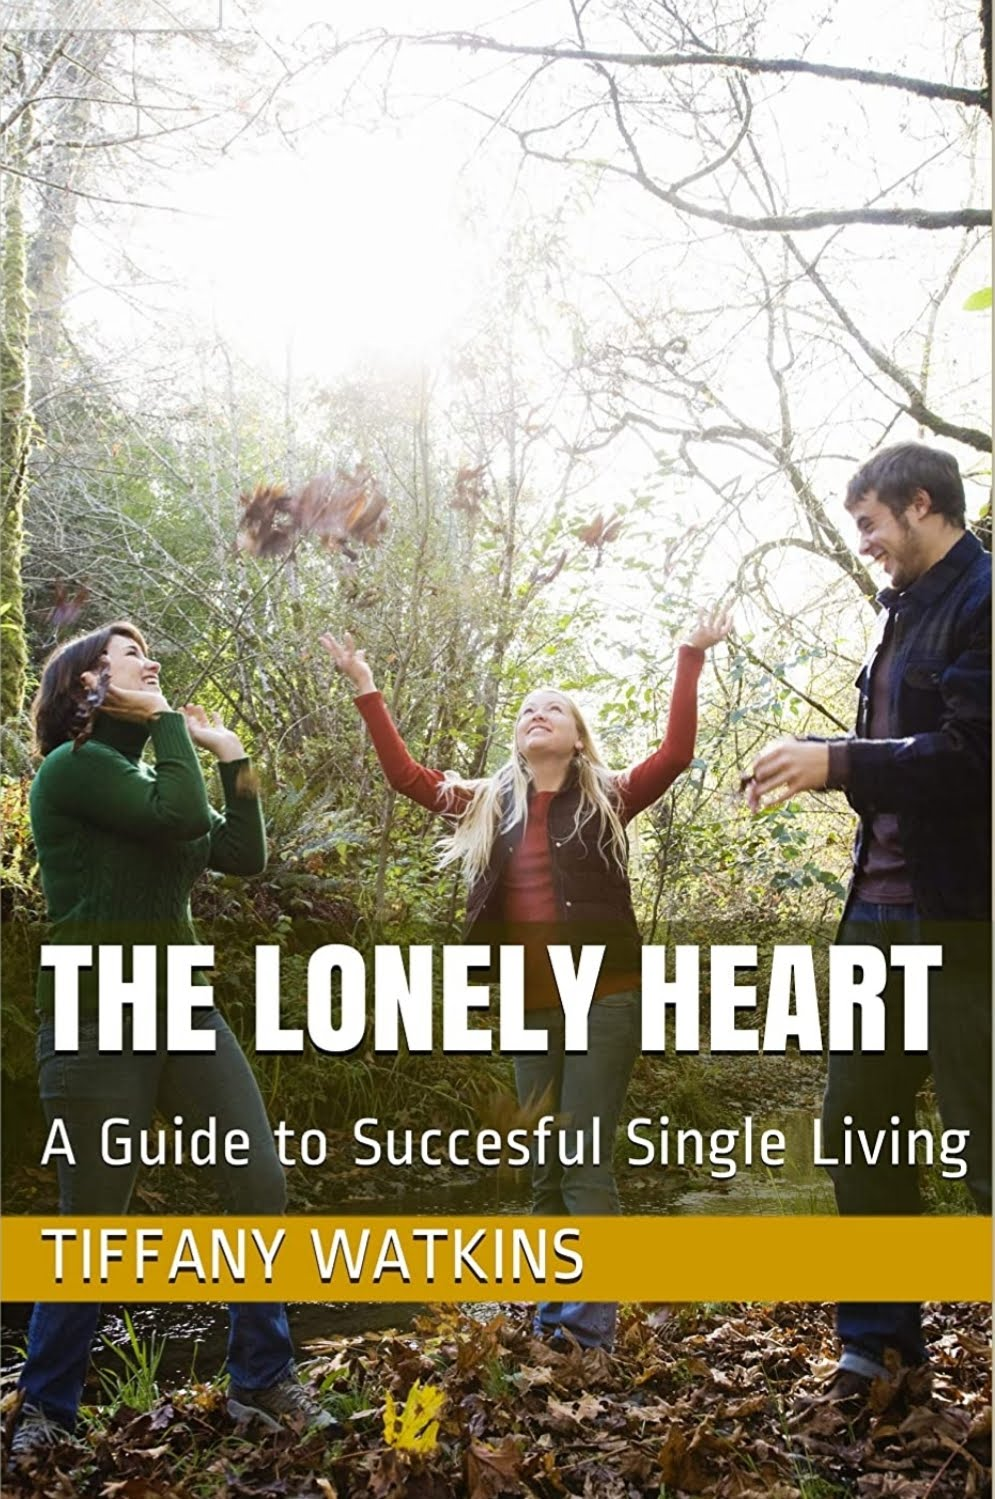 THE LONELY HEART: A GUIDE TO SUCCESFUL SINGLE LIVING